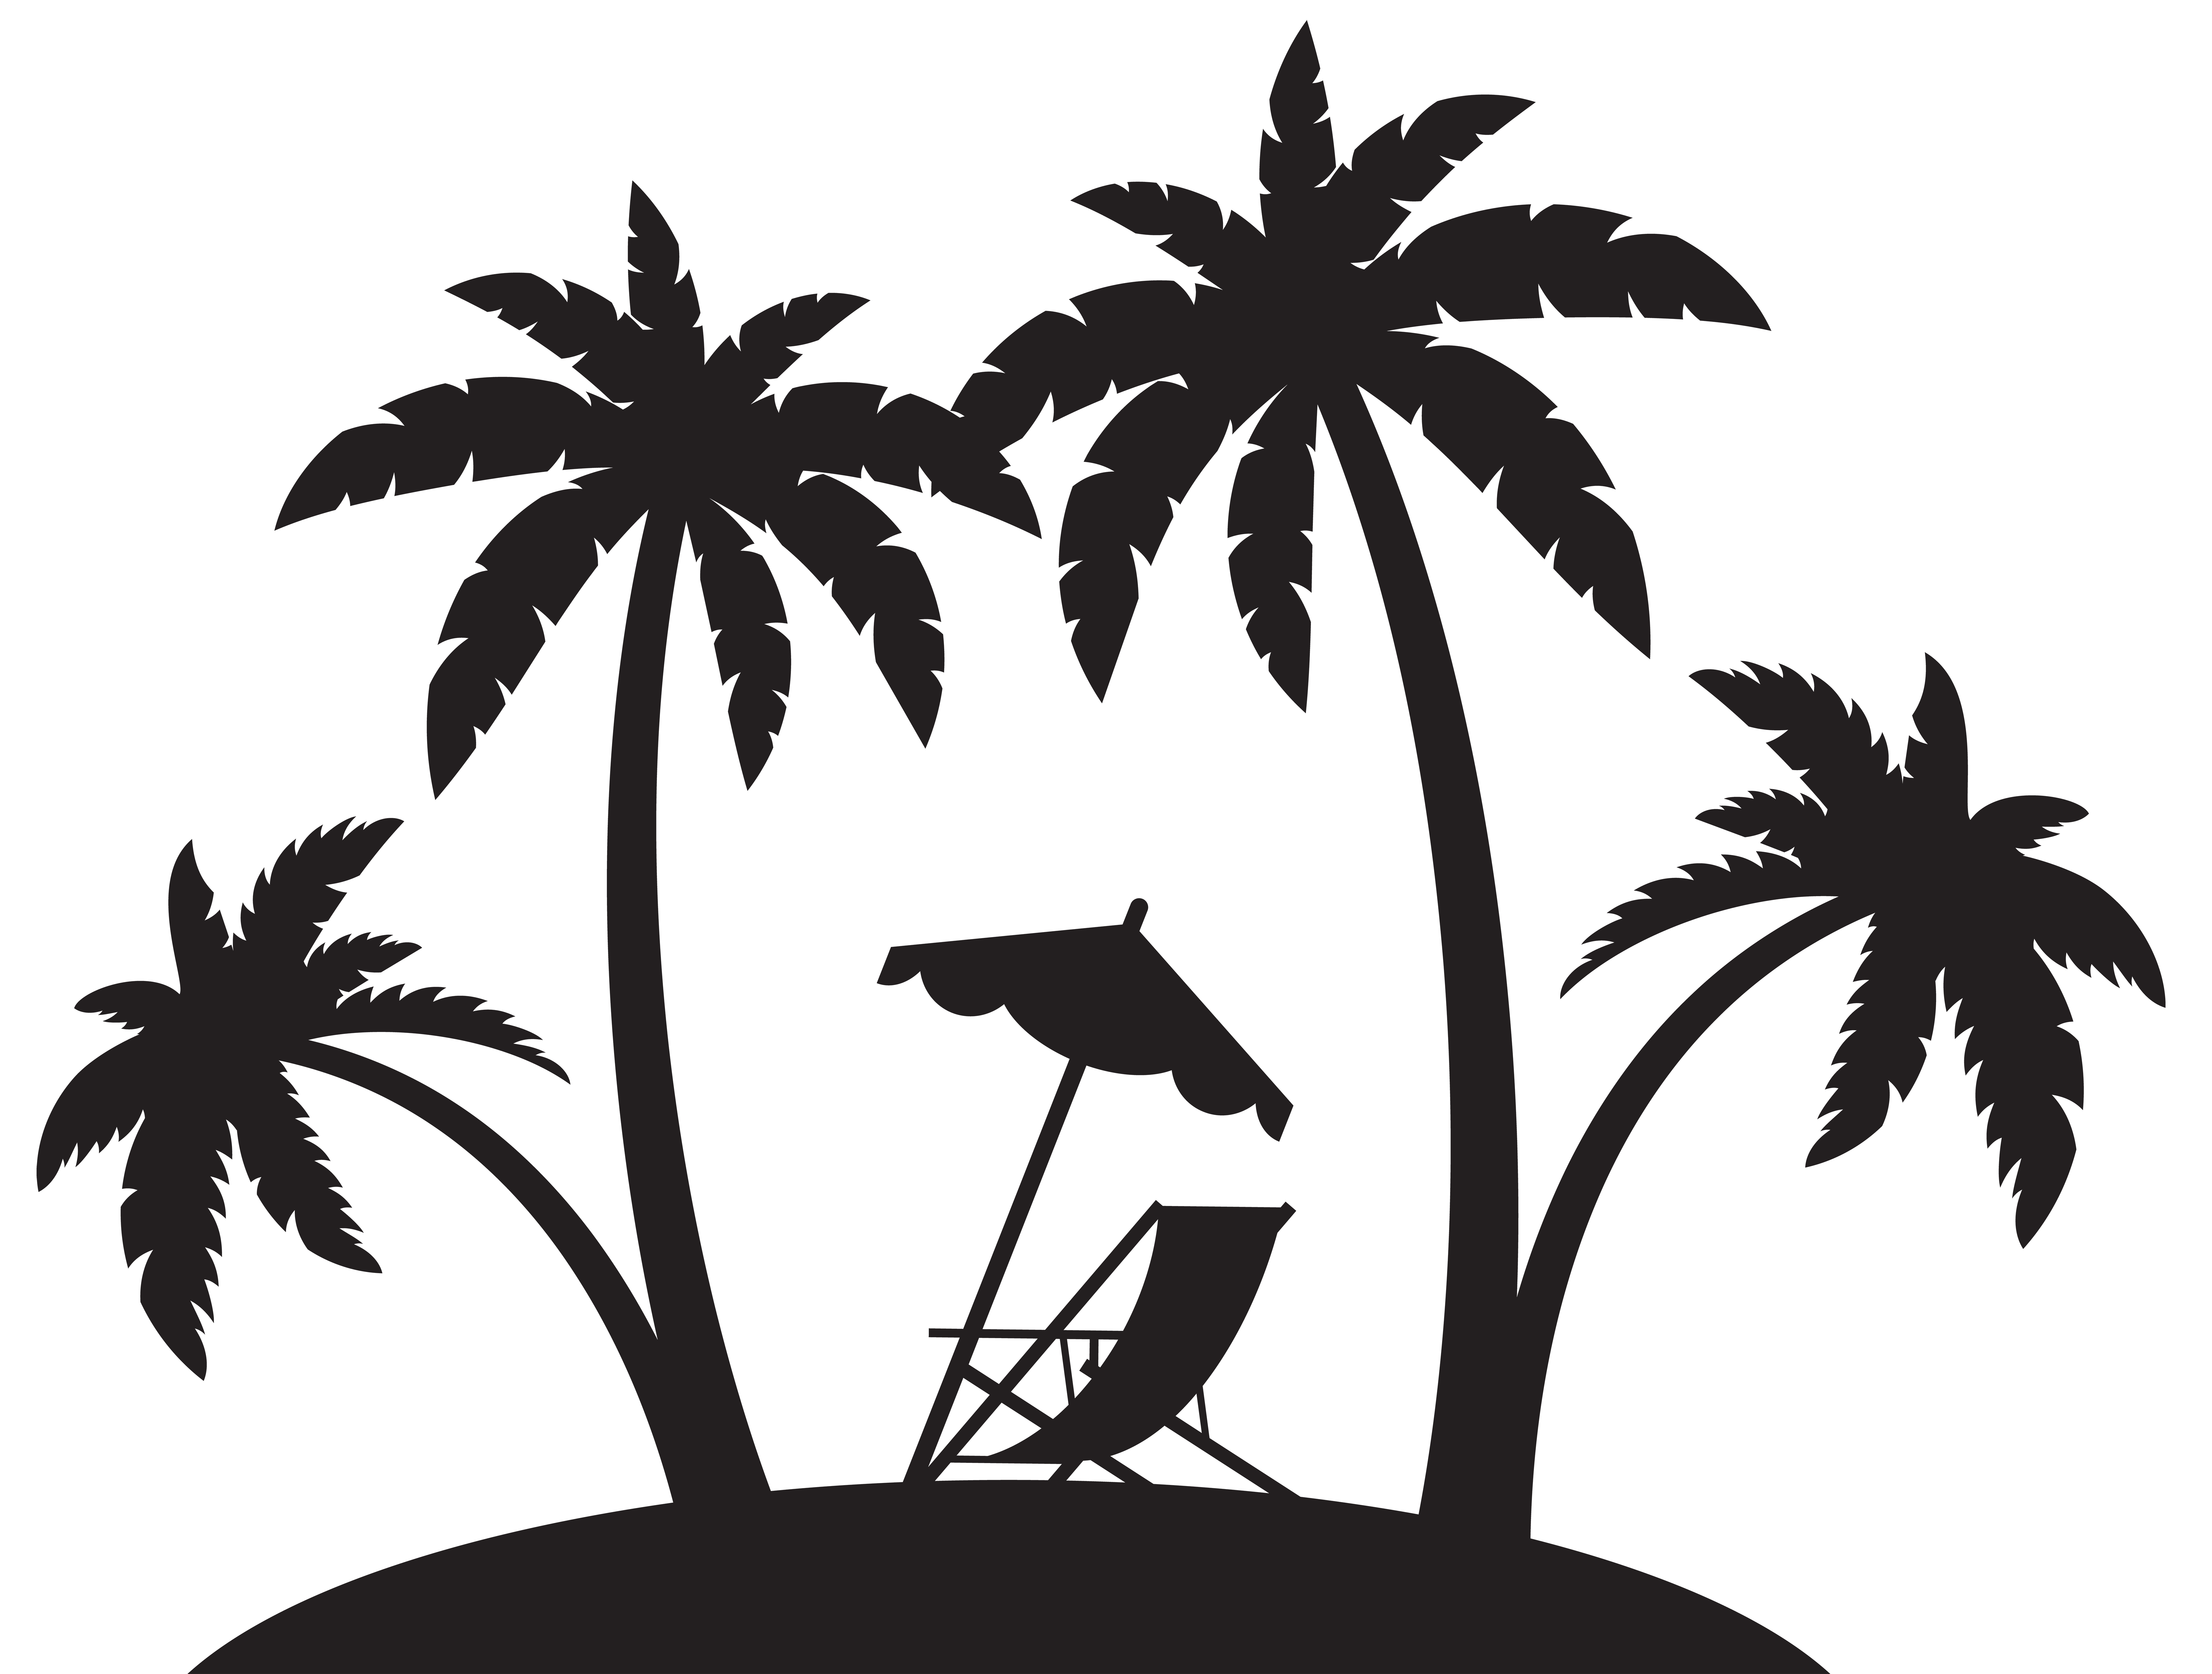 Clipart palm tree beach black and white image transparent stock California State University, Long Beach Los Angeles White House ... image transparent stock